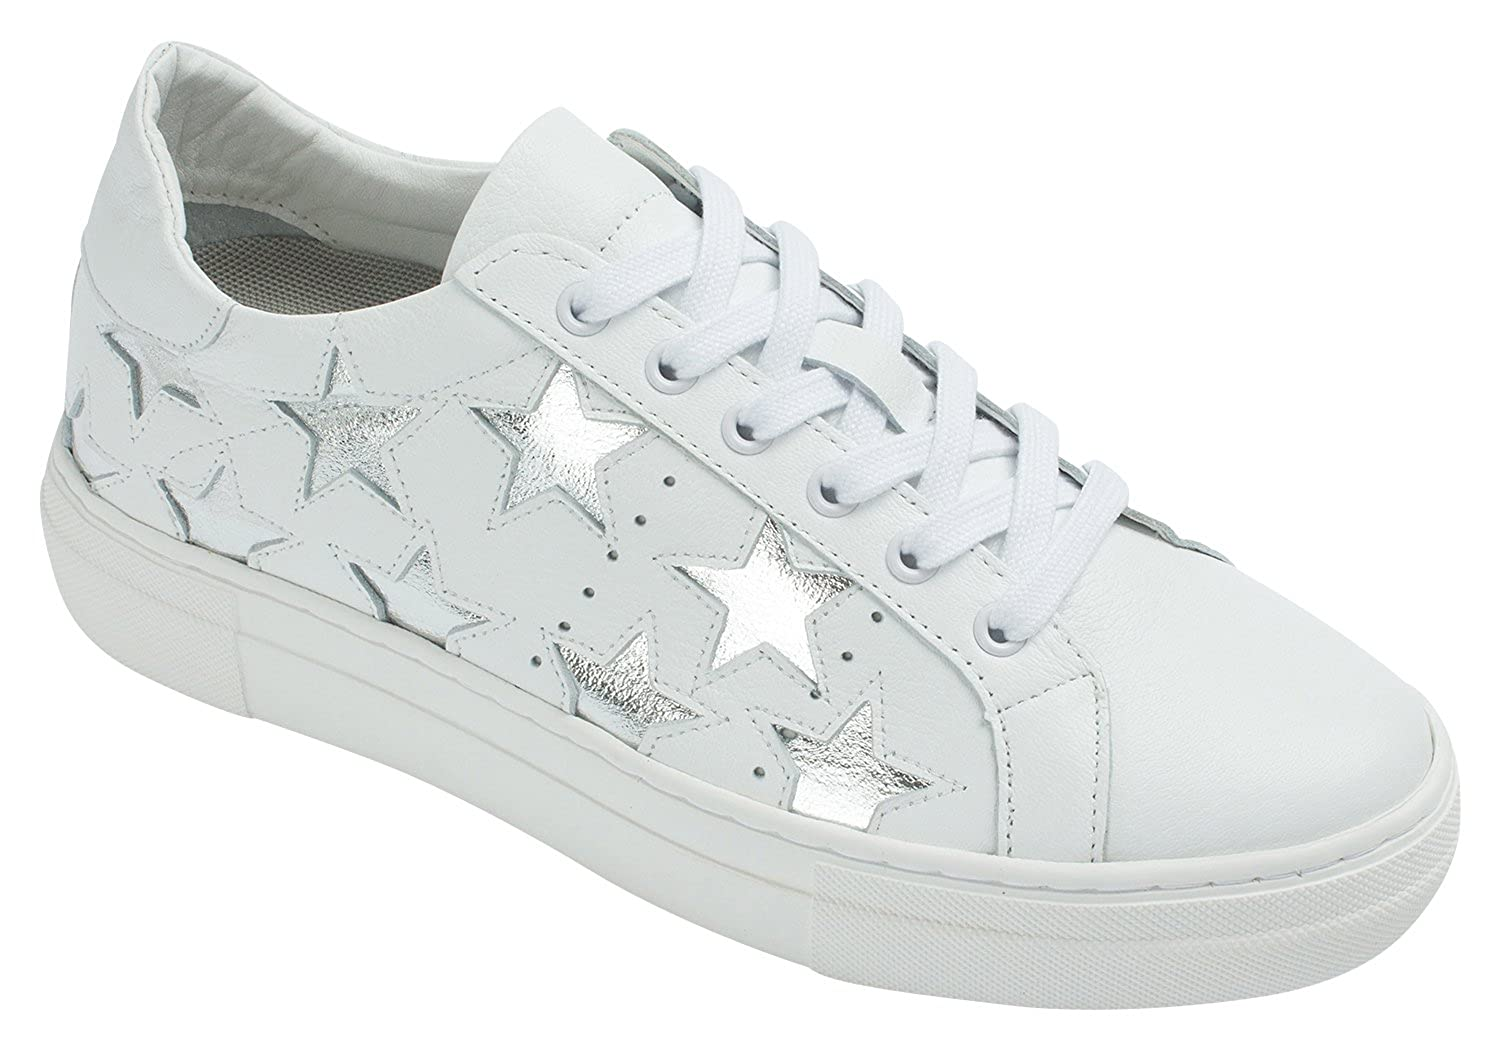 5818031f4430 AnnaKastle Womens Genuine Leather Star Fashion Lace Up Platform Sneakers -  Casual Women s Shoes